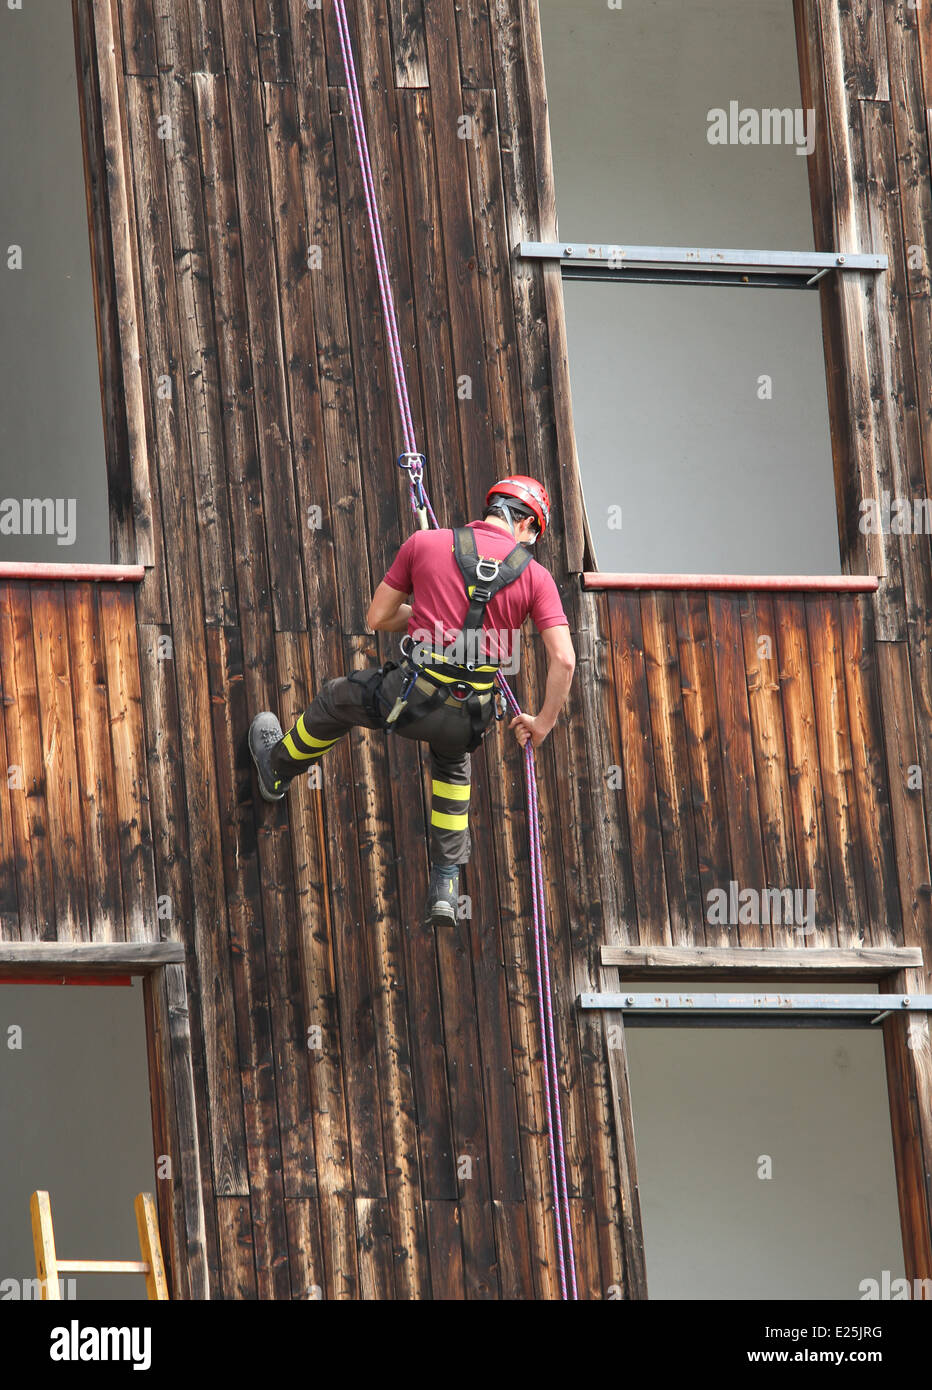 expert firefighter climber down into the wall of the House - Stock Image